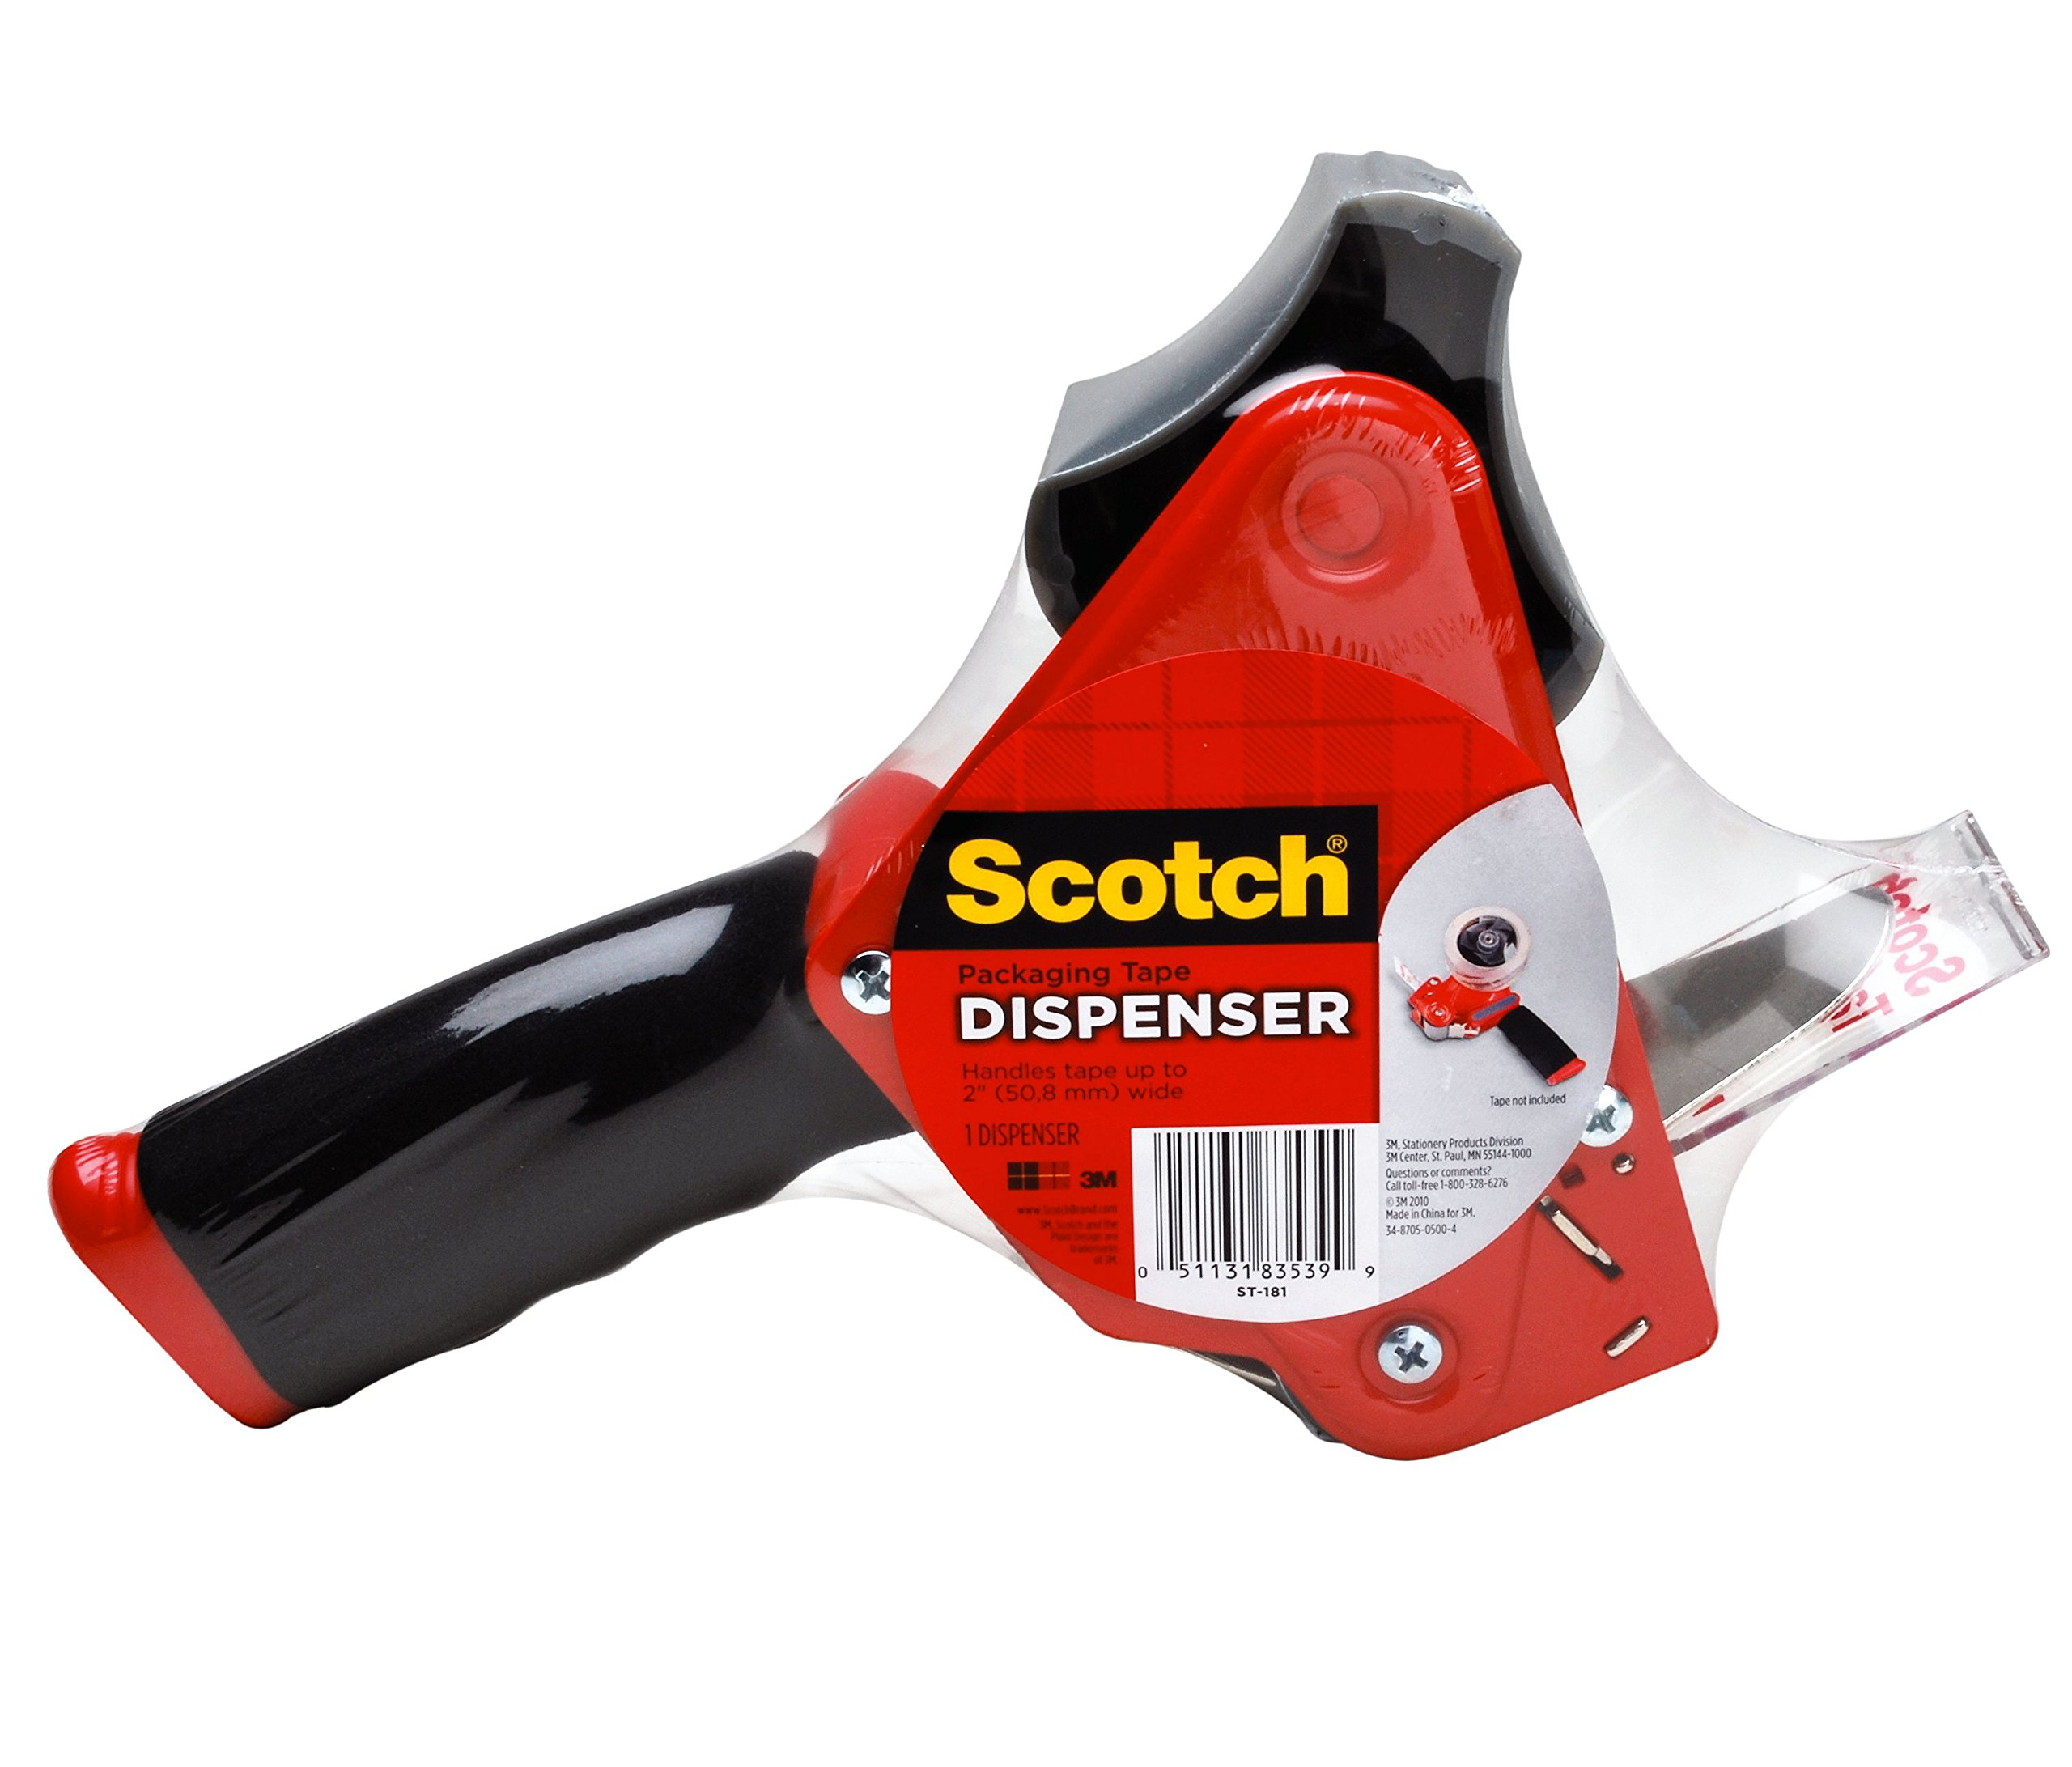 Scotch Packaging Tape Dispenser ST-181, Designed for Standard 3'' Core Rolls, Foam Handle, Retractable Blade and Adjustable Brake by Scotch Brand